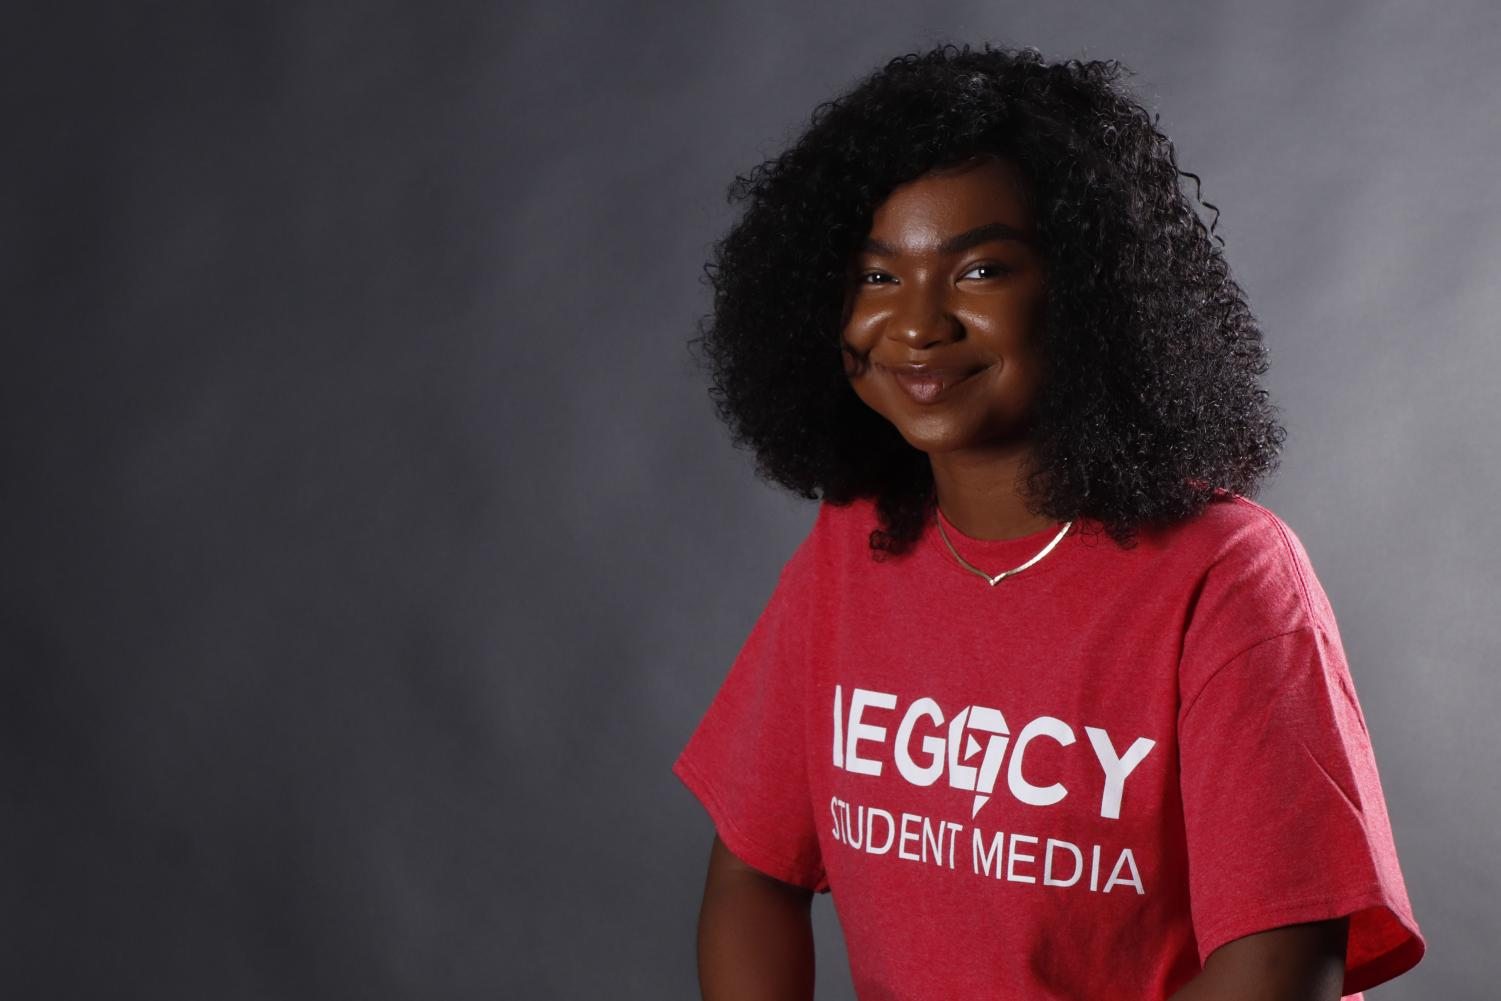 Keonna Burnett writes about her performance at the Cowboy's football game